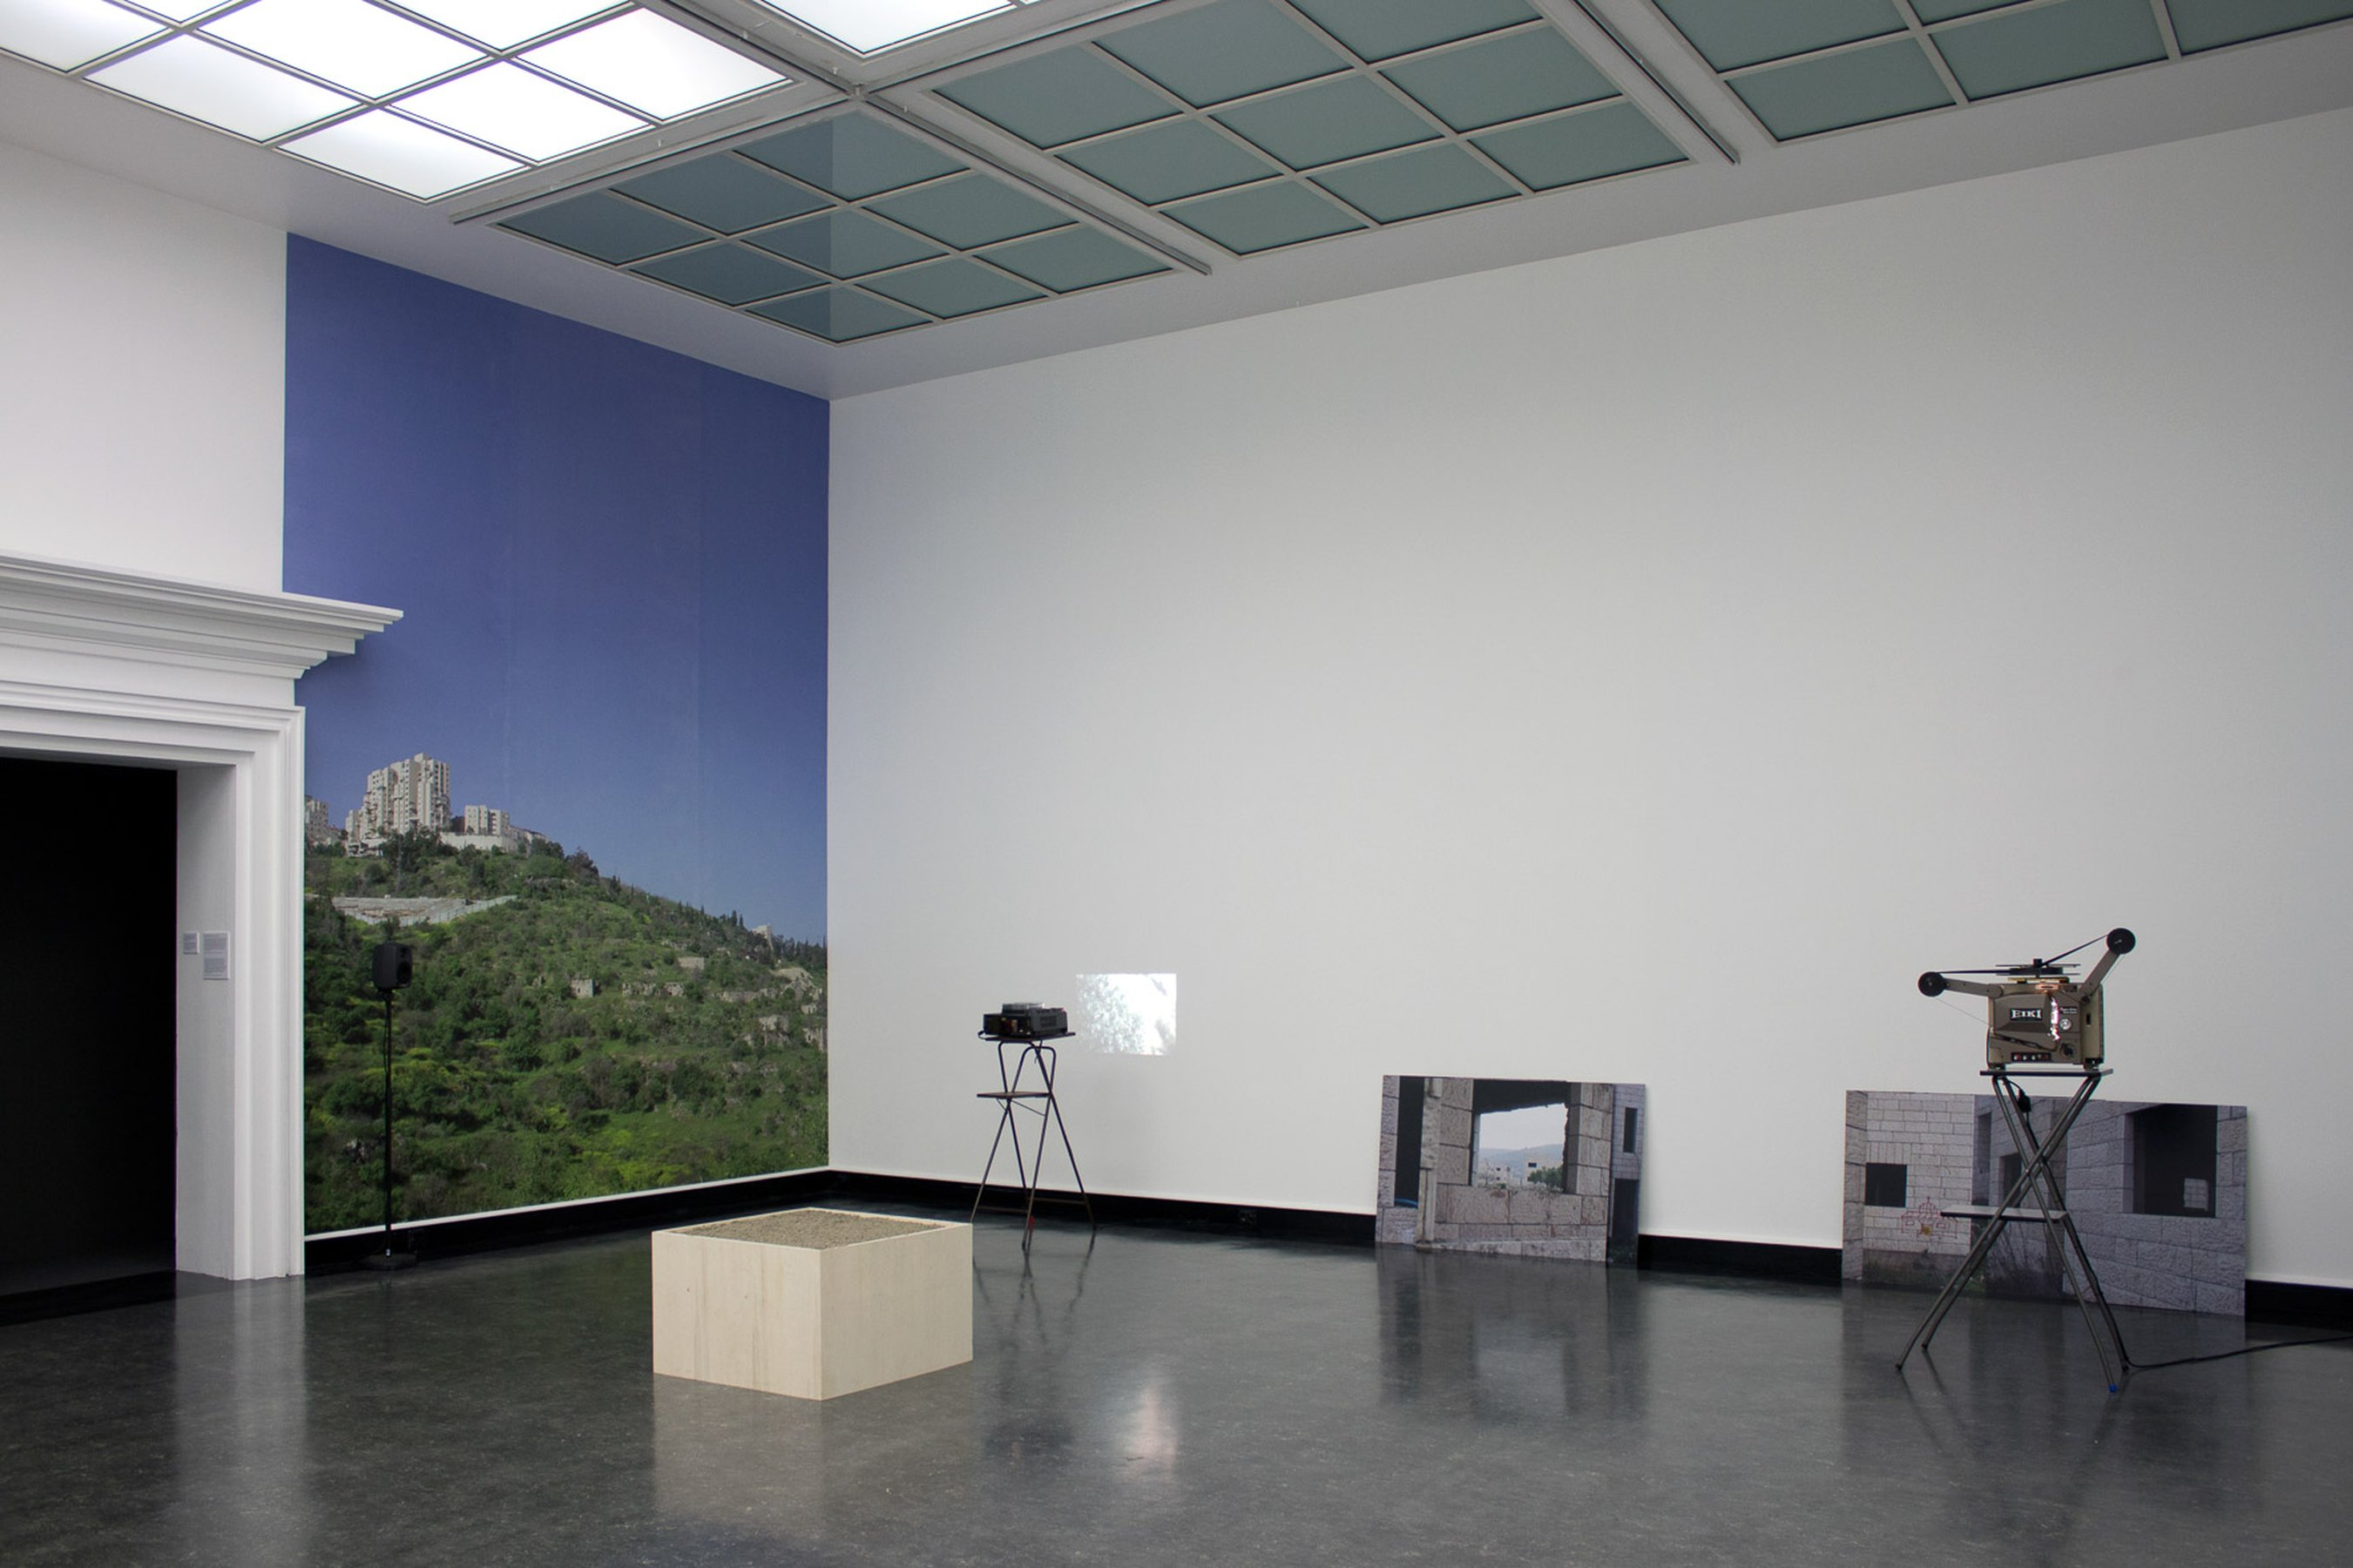 Unmade Film - The Reconnaissance, 2012 - 2013 installation view